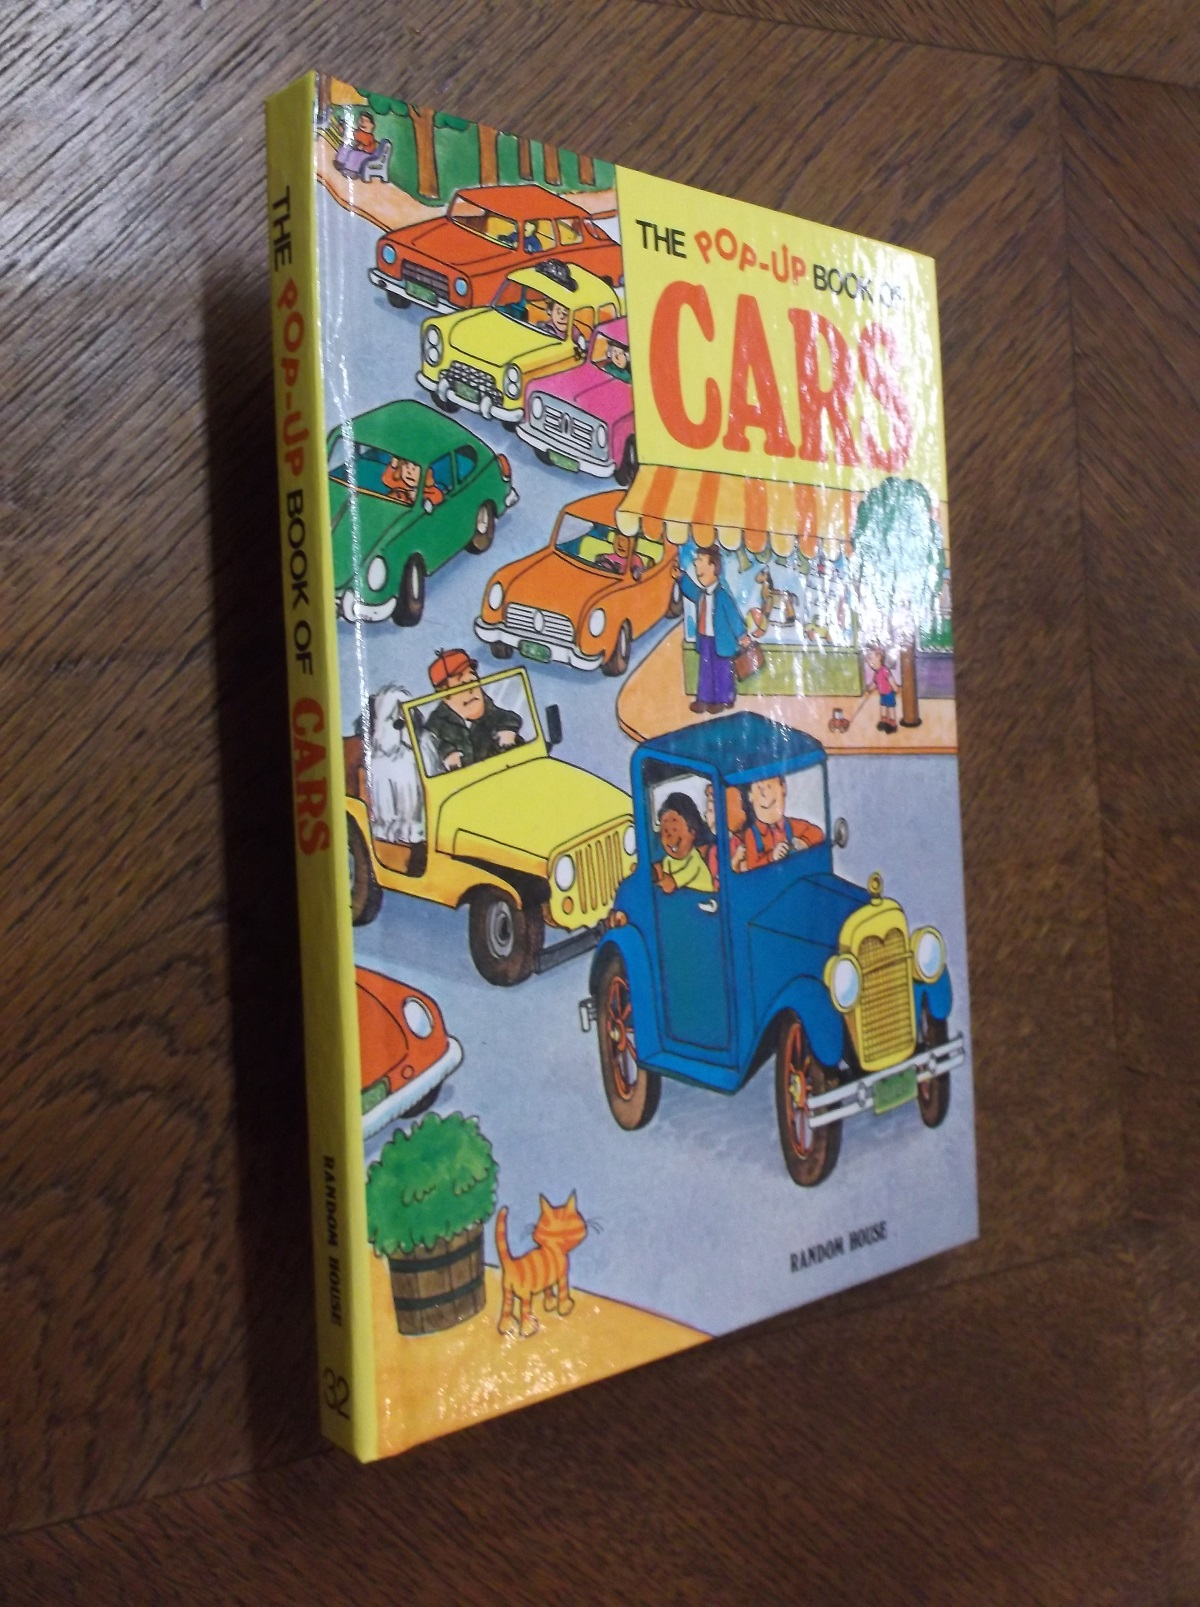 Pop Up Book Cover The Pop Up Book Of Cars By Renzo Barto On Barker Books Vintage